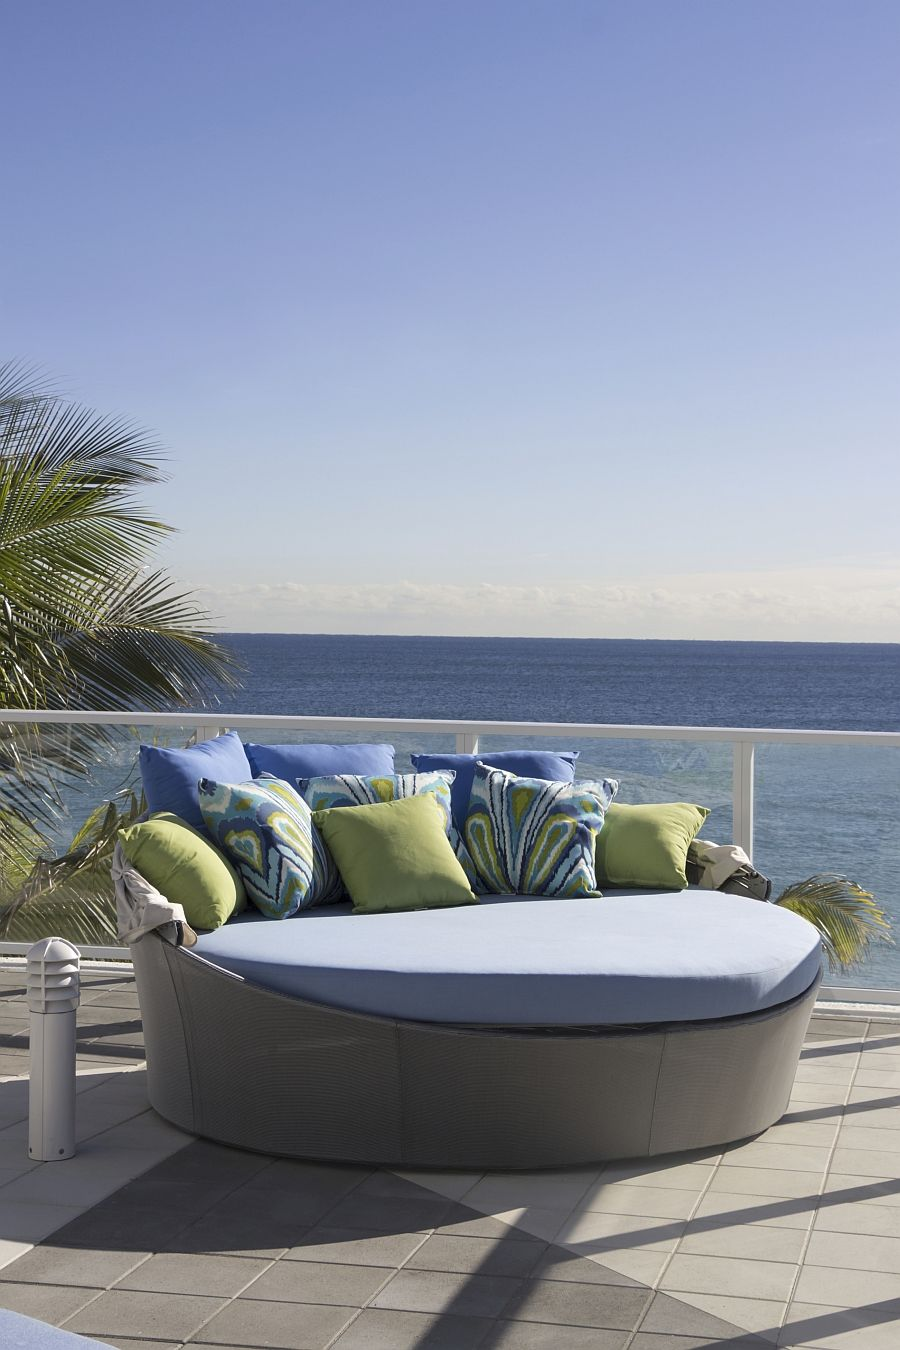 Aqua-couch from Source Outdoor terrace